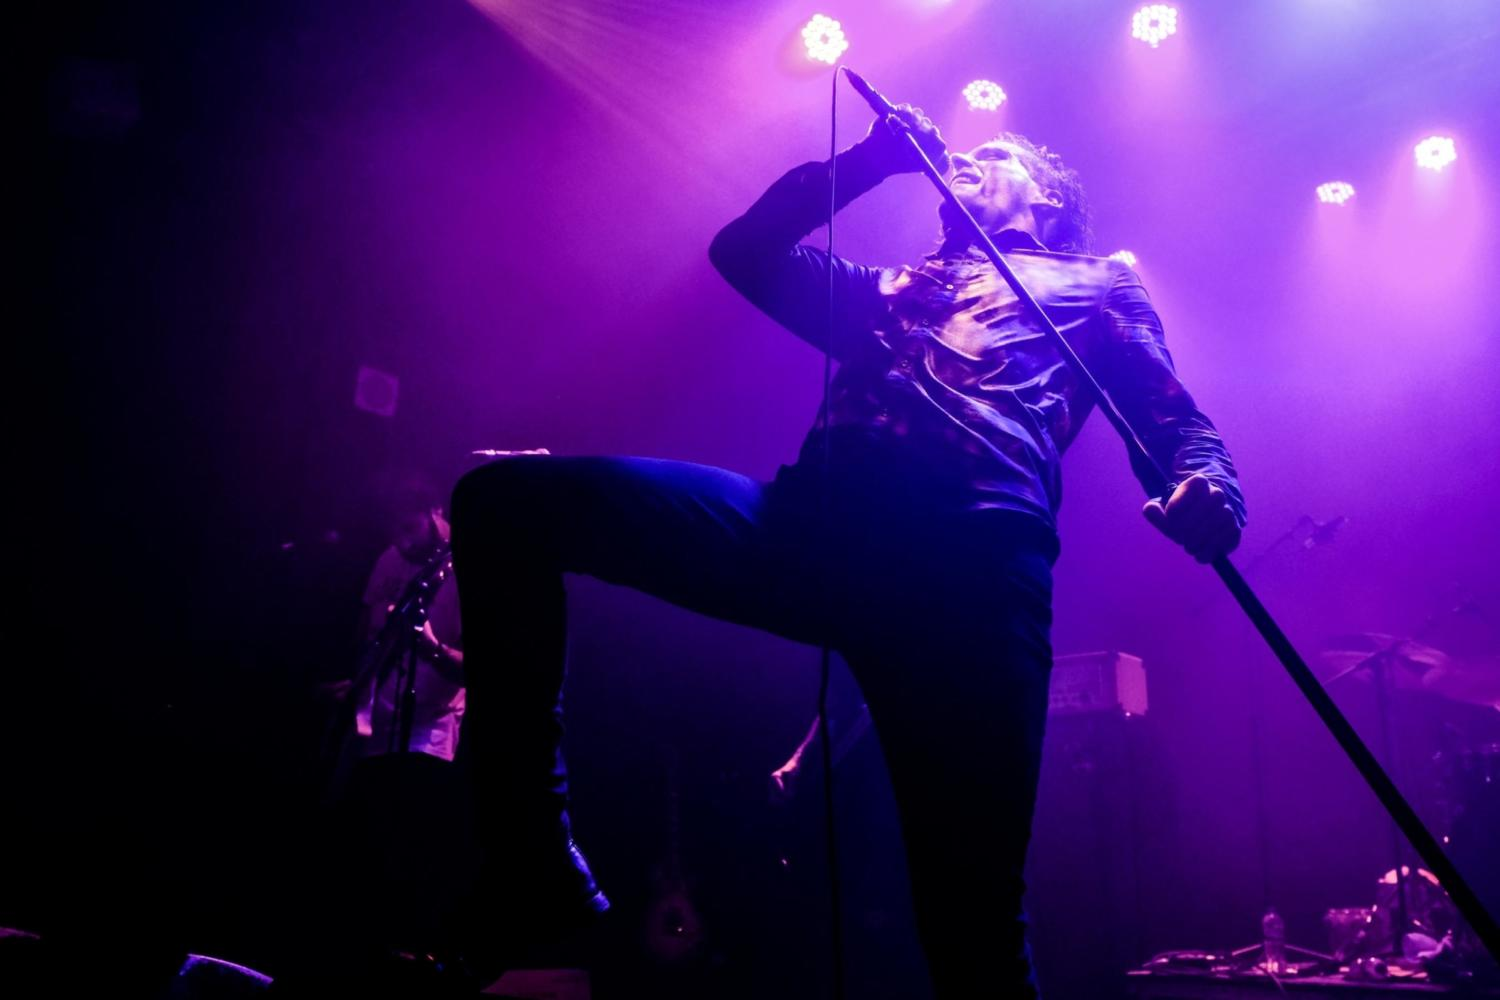 Deafheaven and Touche Amore announce co-headline tour